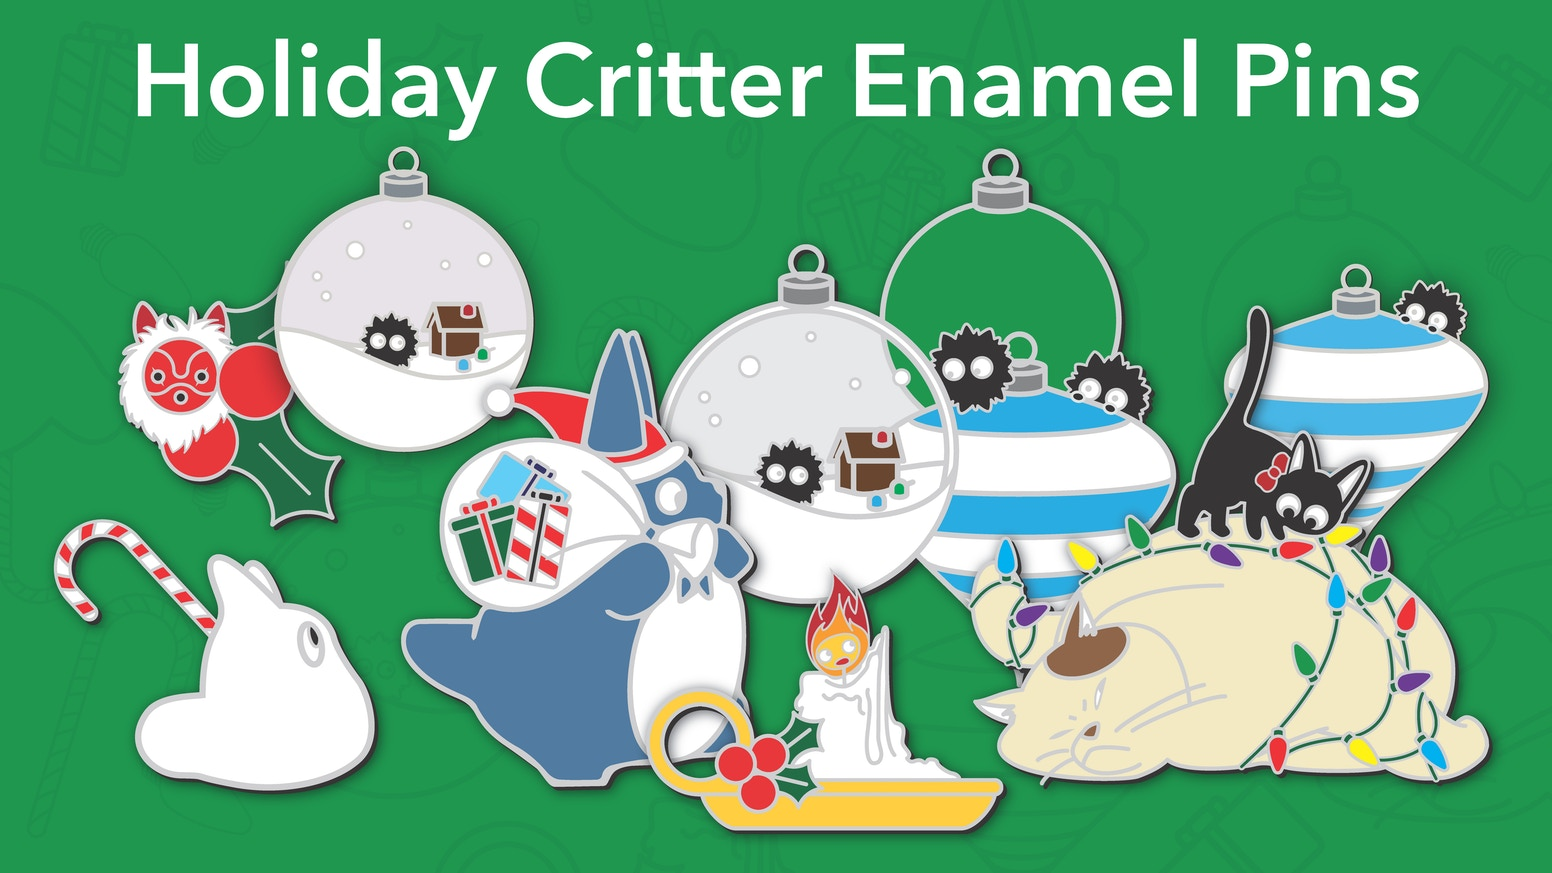 Holiday Critter Enamel Pins & Stickers by Amber M Coultis — Kickstarter